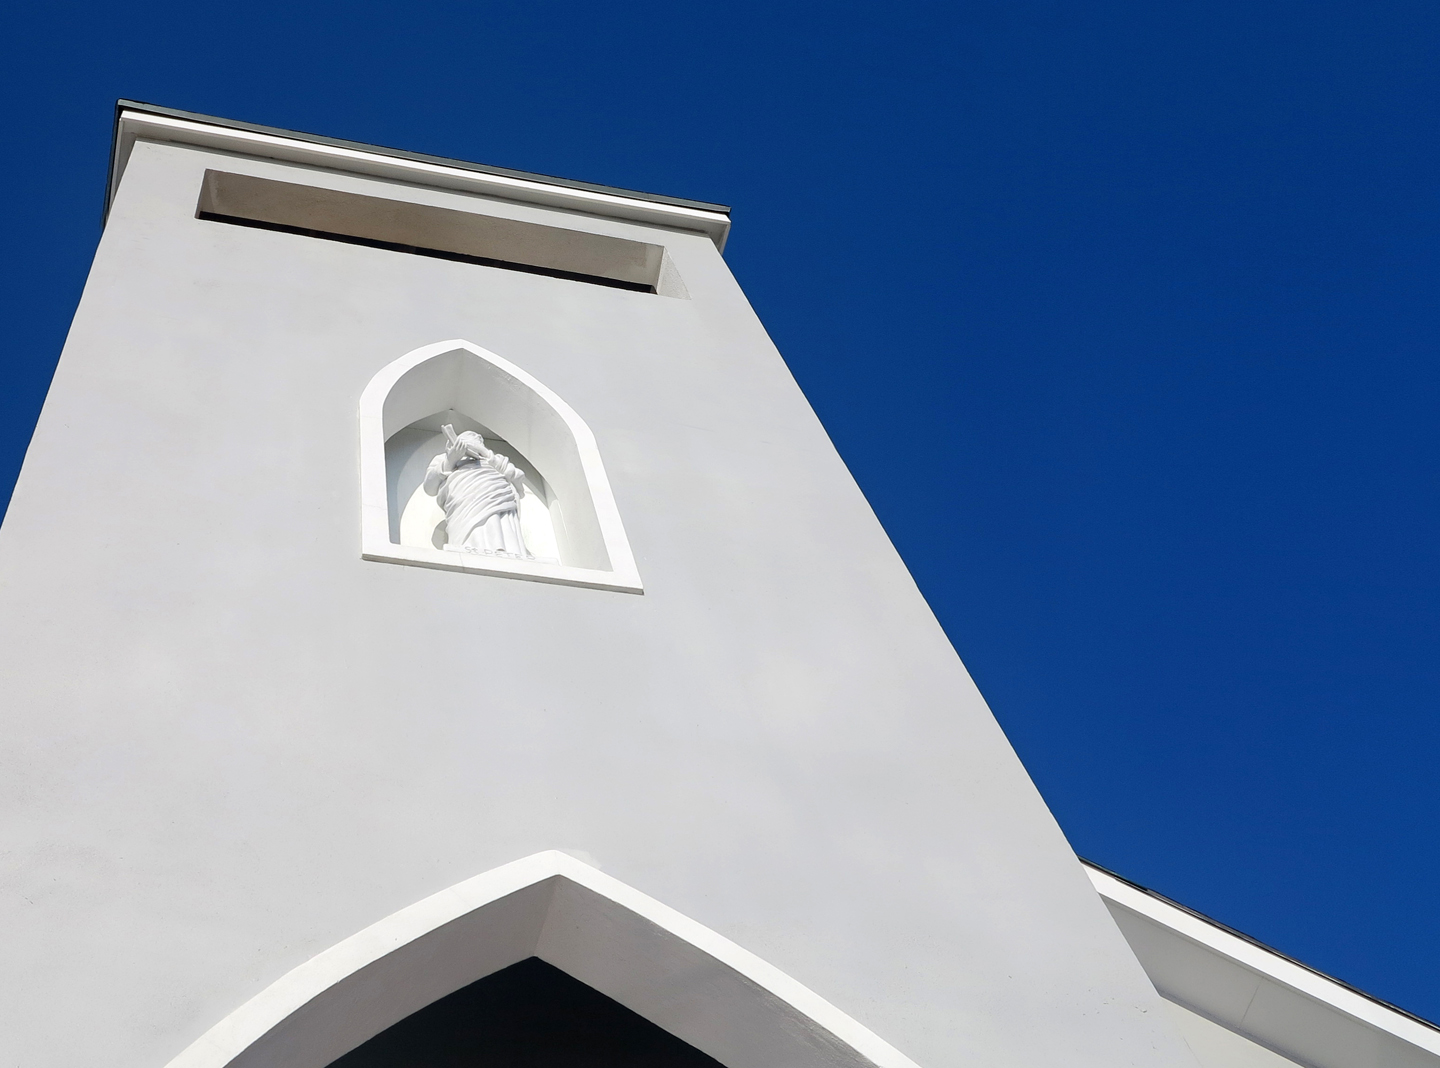 St. Peter's Anglican Church, Green Turtle Cay, Bahamas